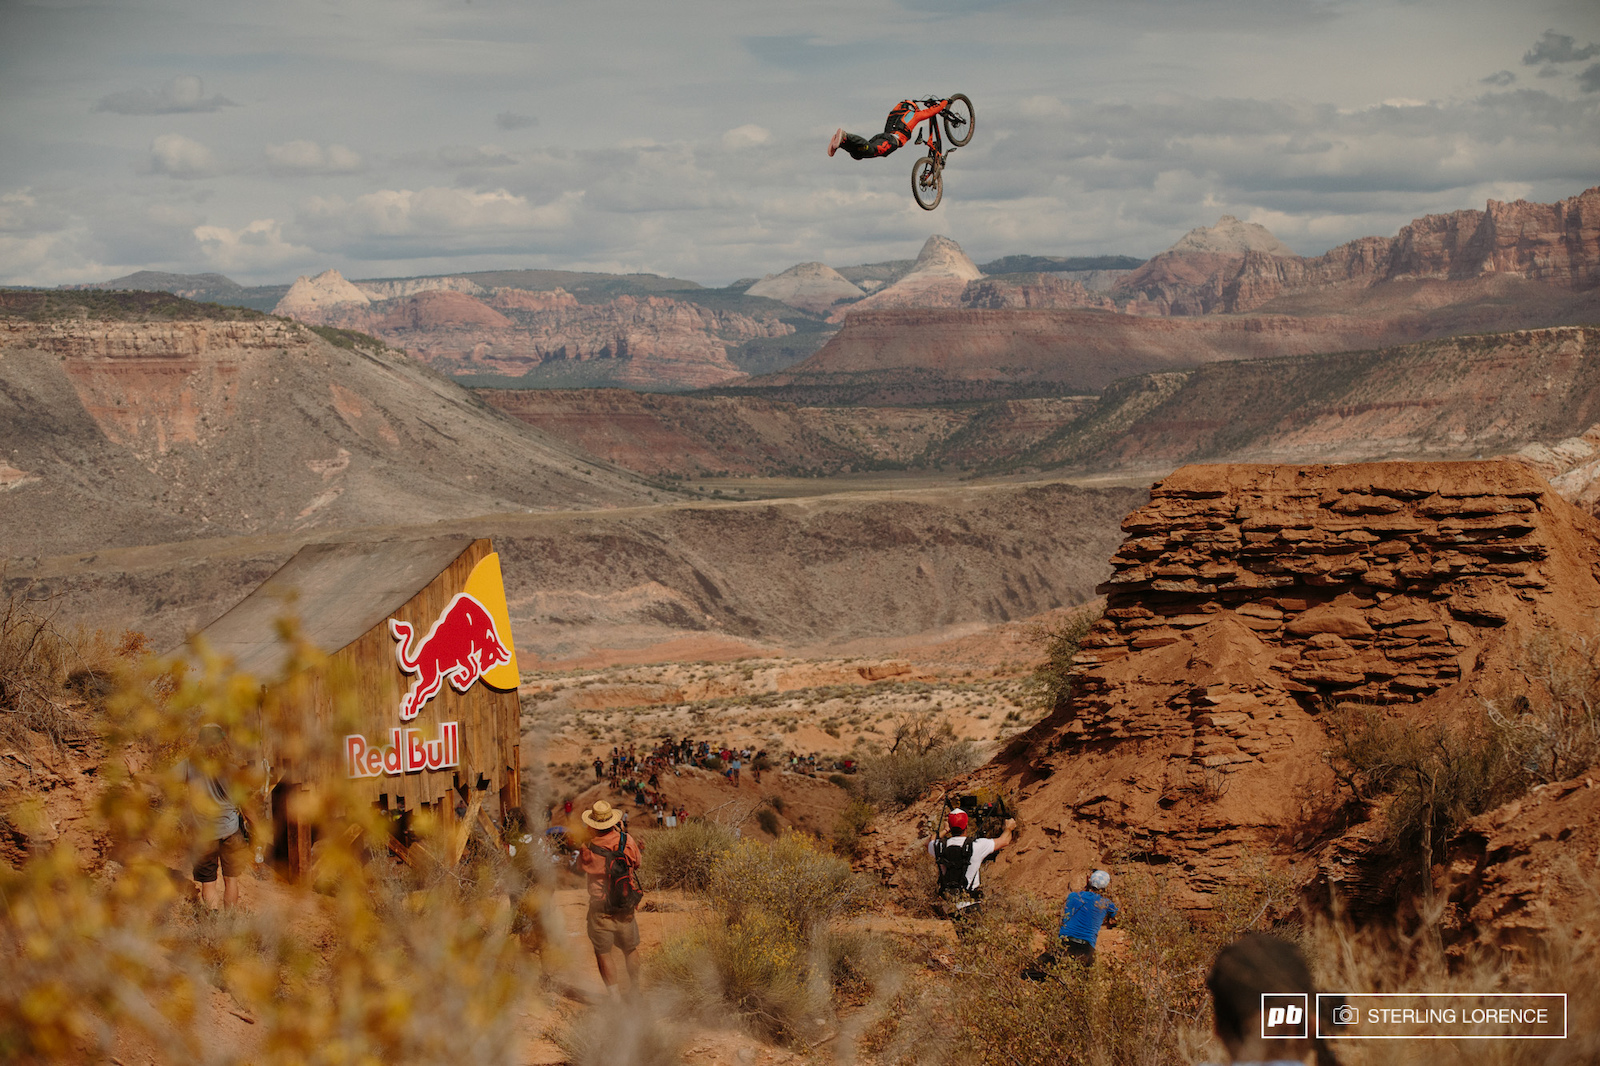 Sam Reynolds at RedBull Rampage 2015 Virgin Utah USA